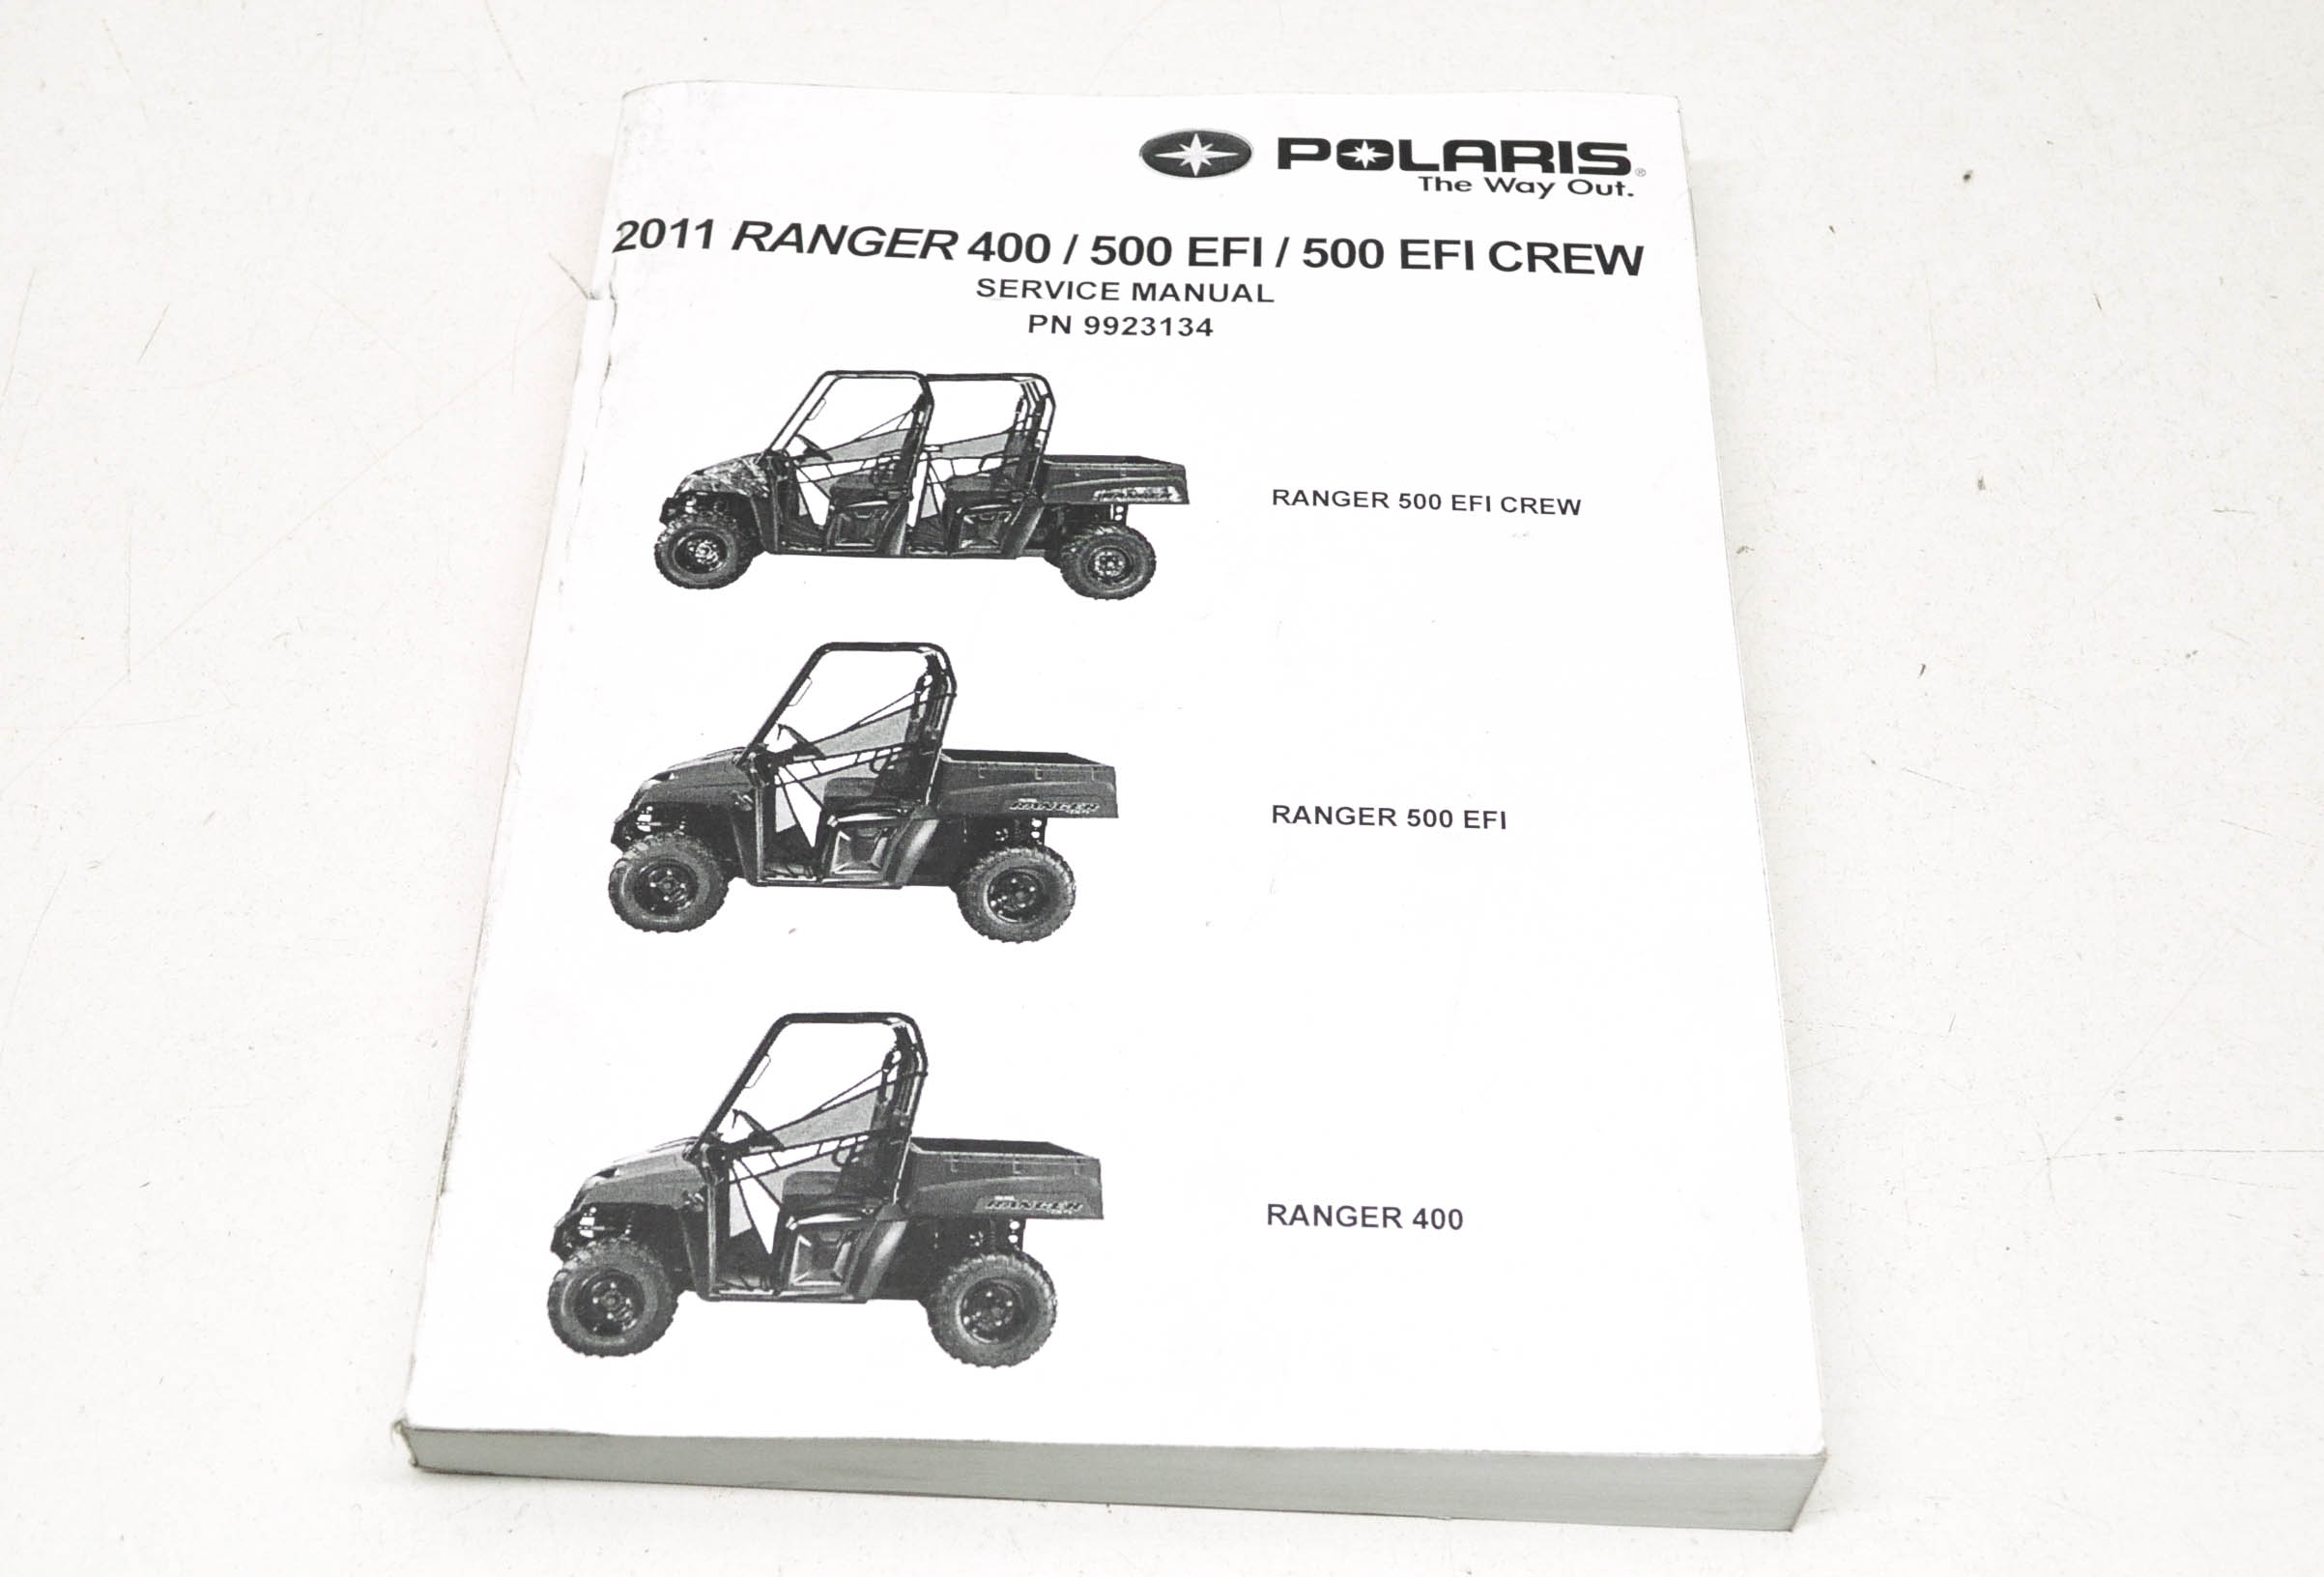 OEM Polaris 9923134 Service Manual 12 Ranger 400/500 4X4